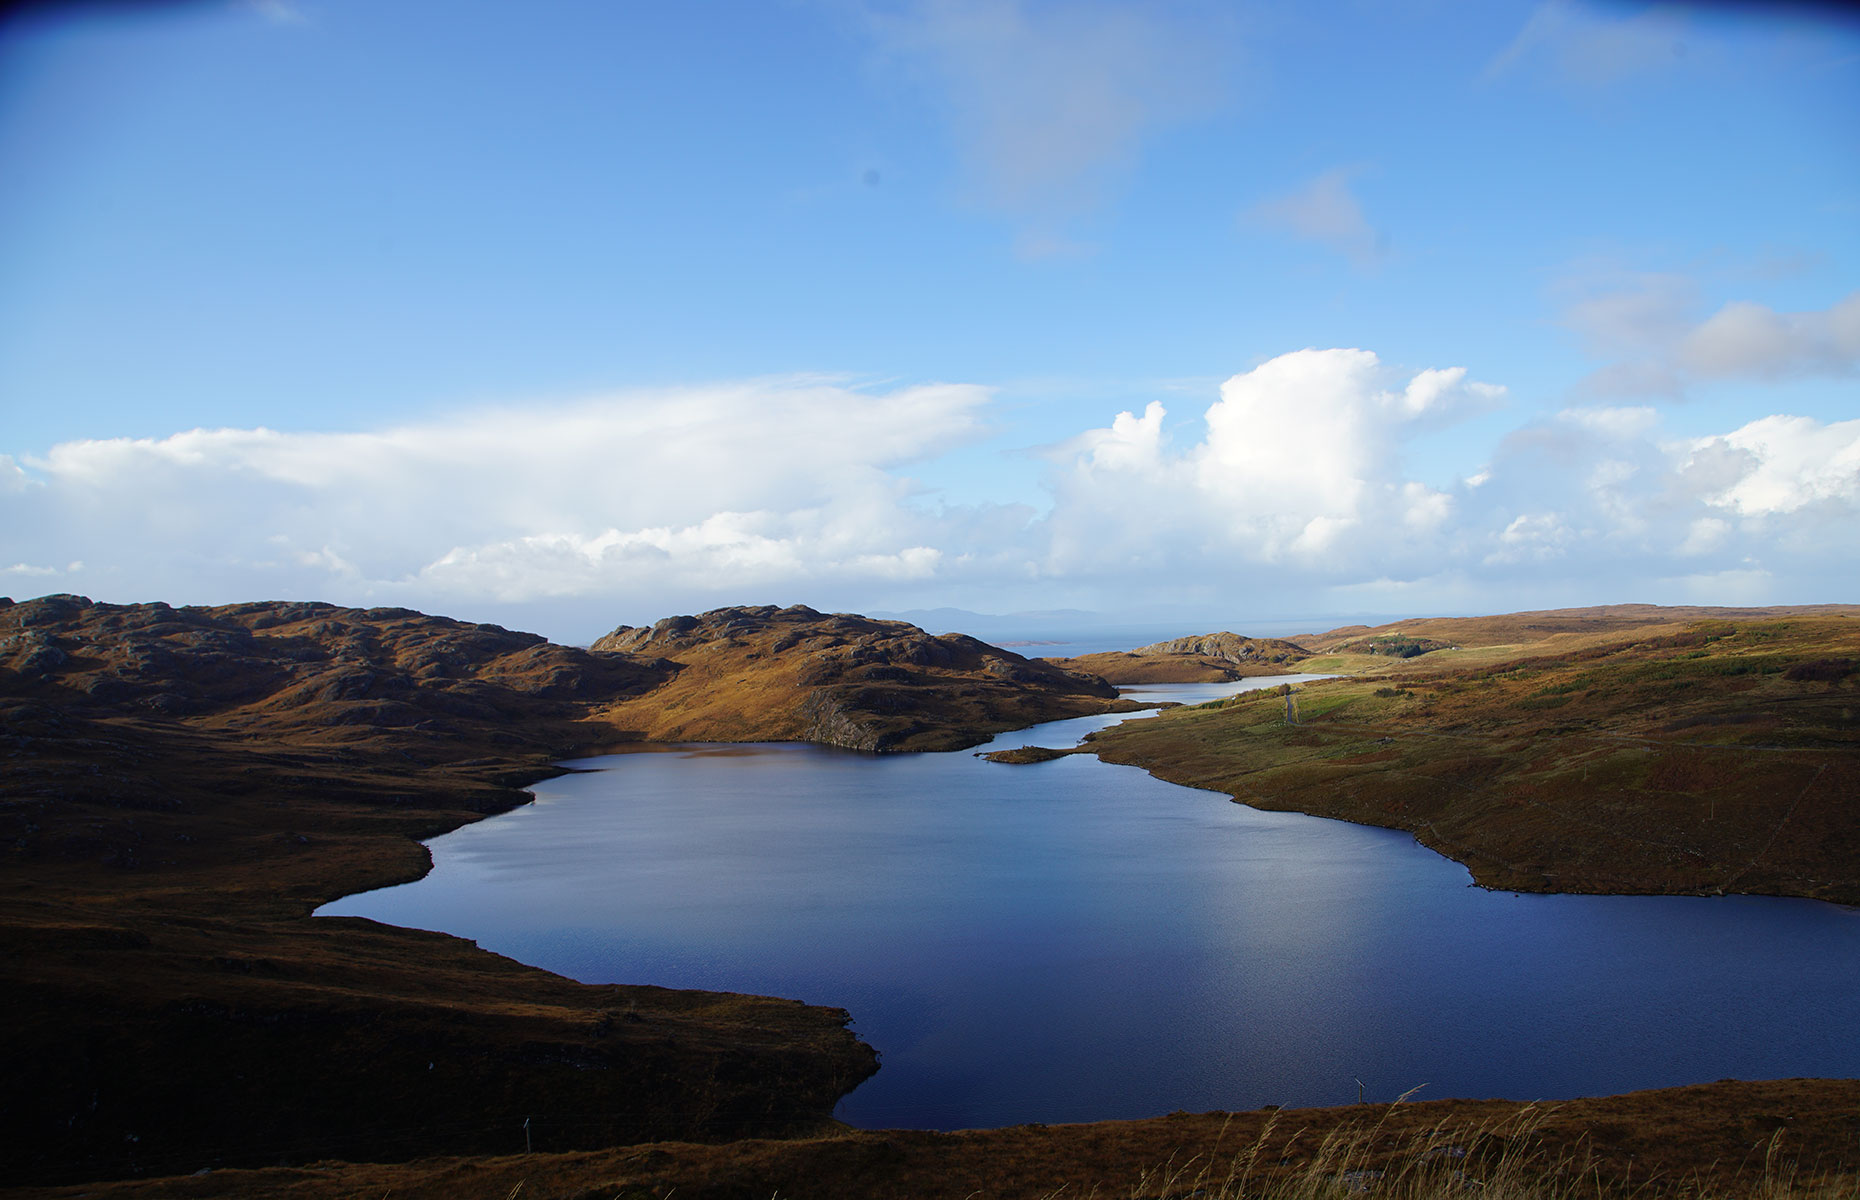 The rugged terrain of the Scottish Highlands is apparent in Wester Ross